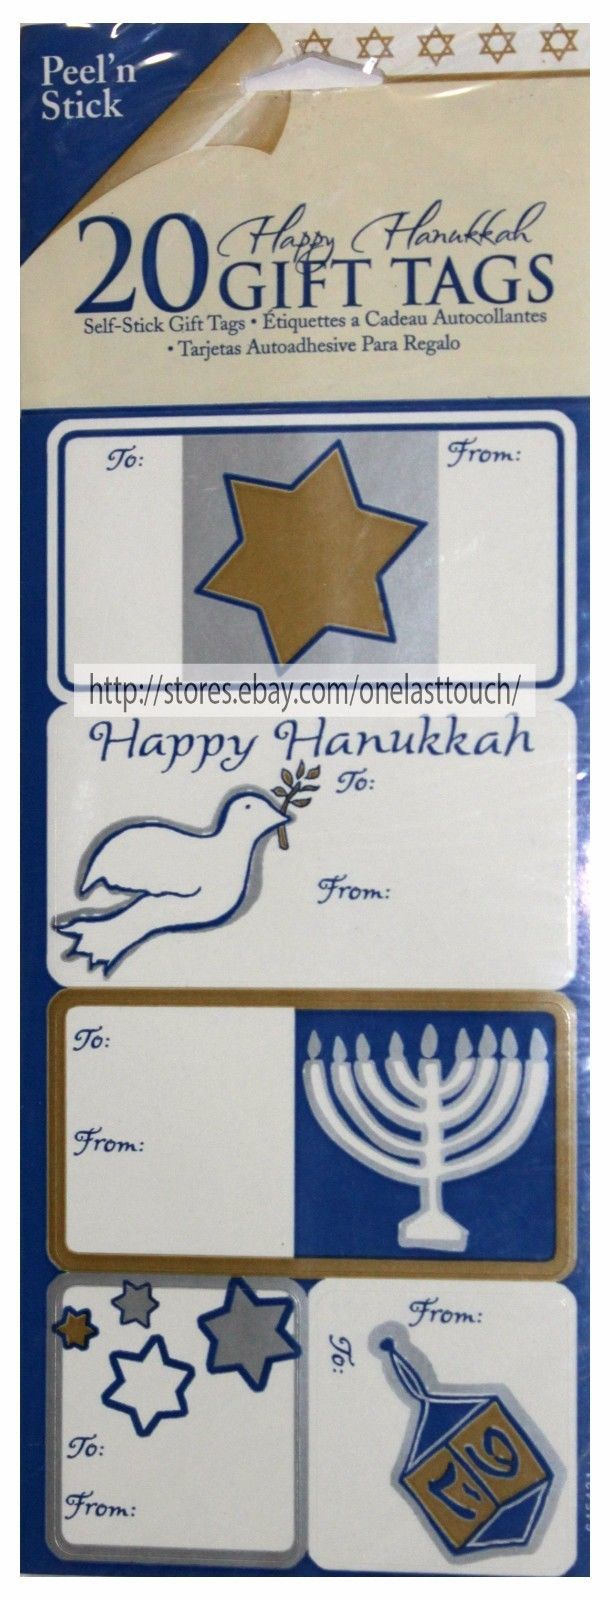 American greetings wrapping paper 2 customer reviews and 203 listings american greetings 20pc gift tags self stick happy hanukkah gift tags holiday 297 m4hsunfo